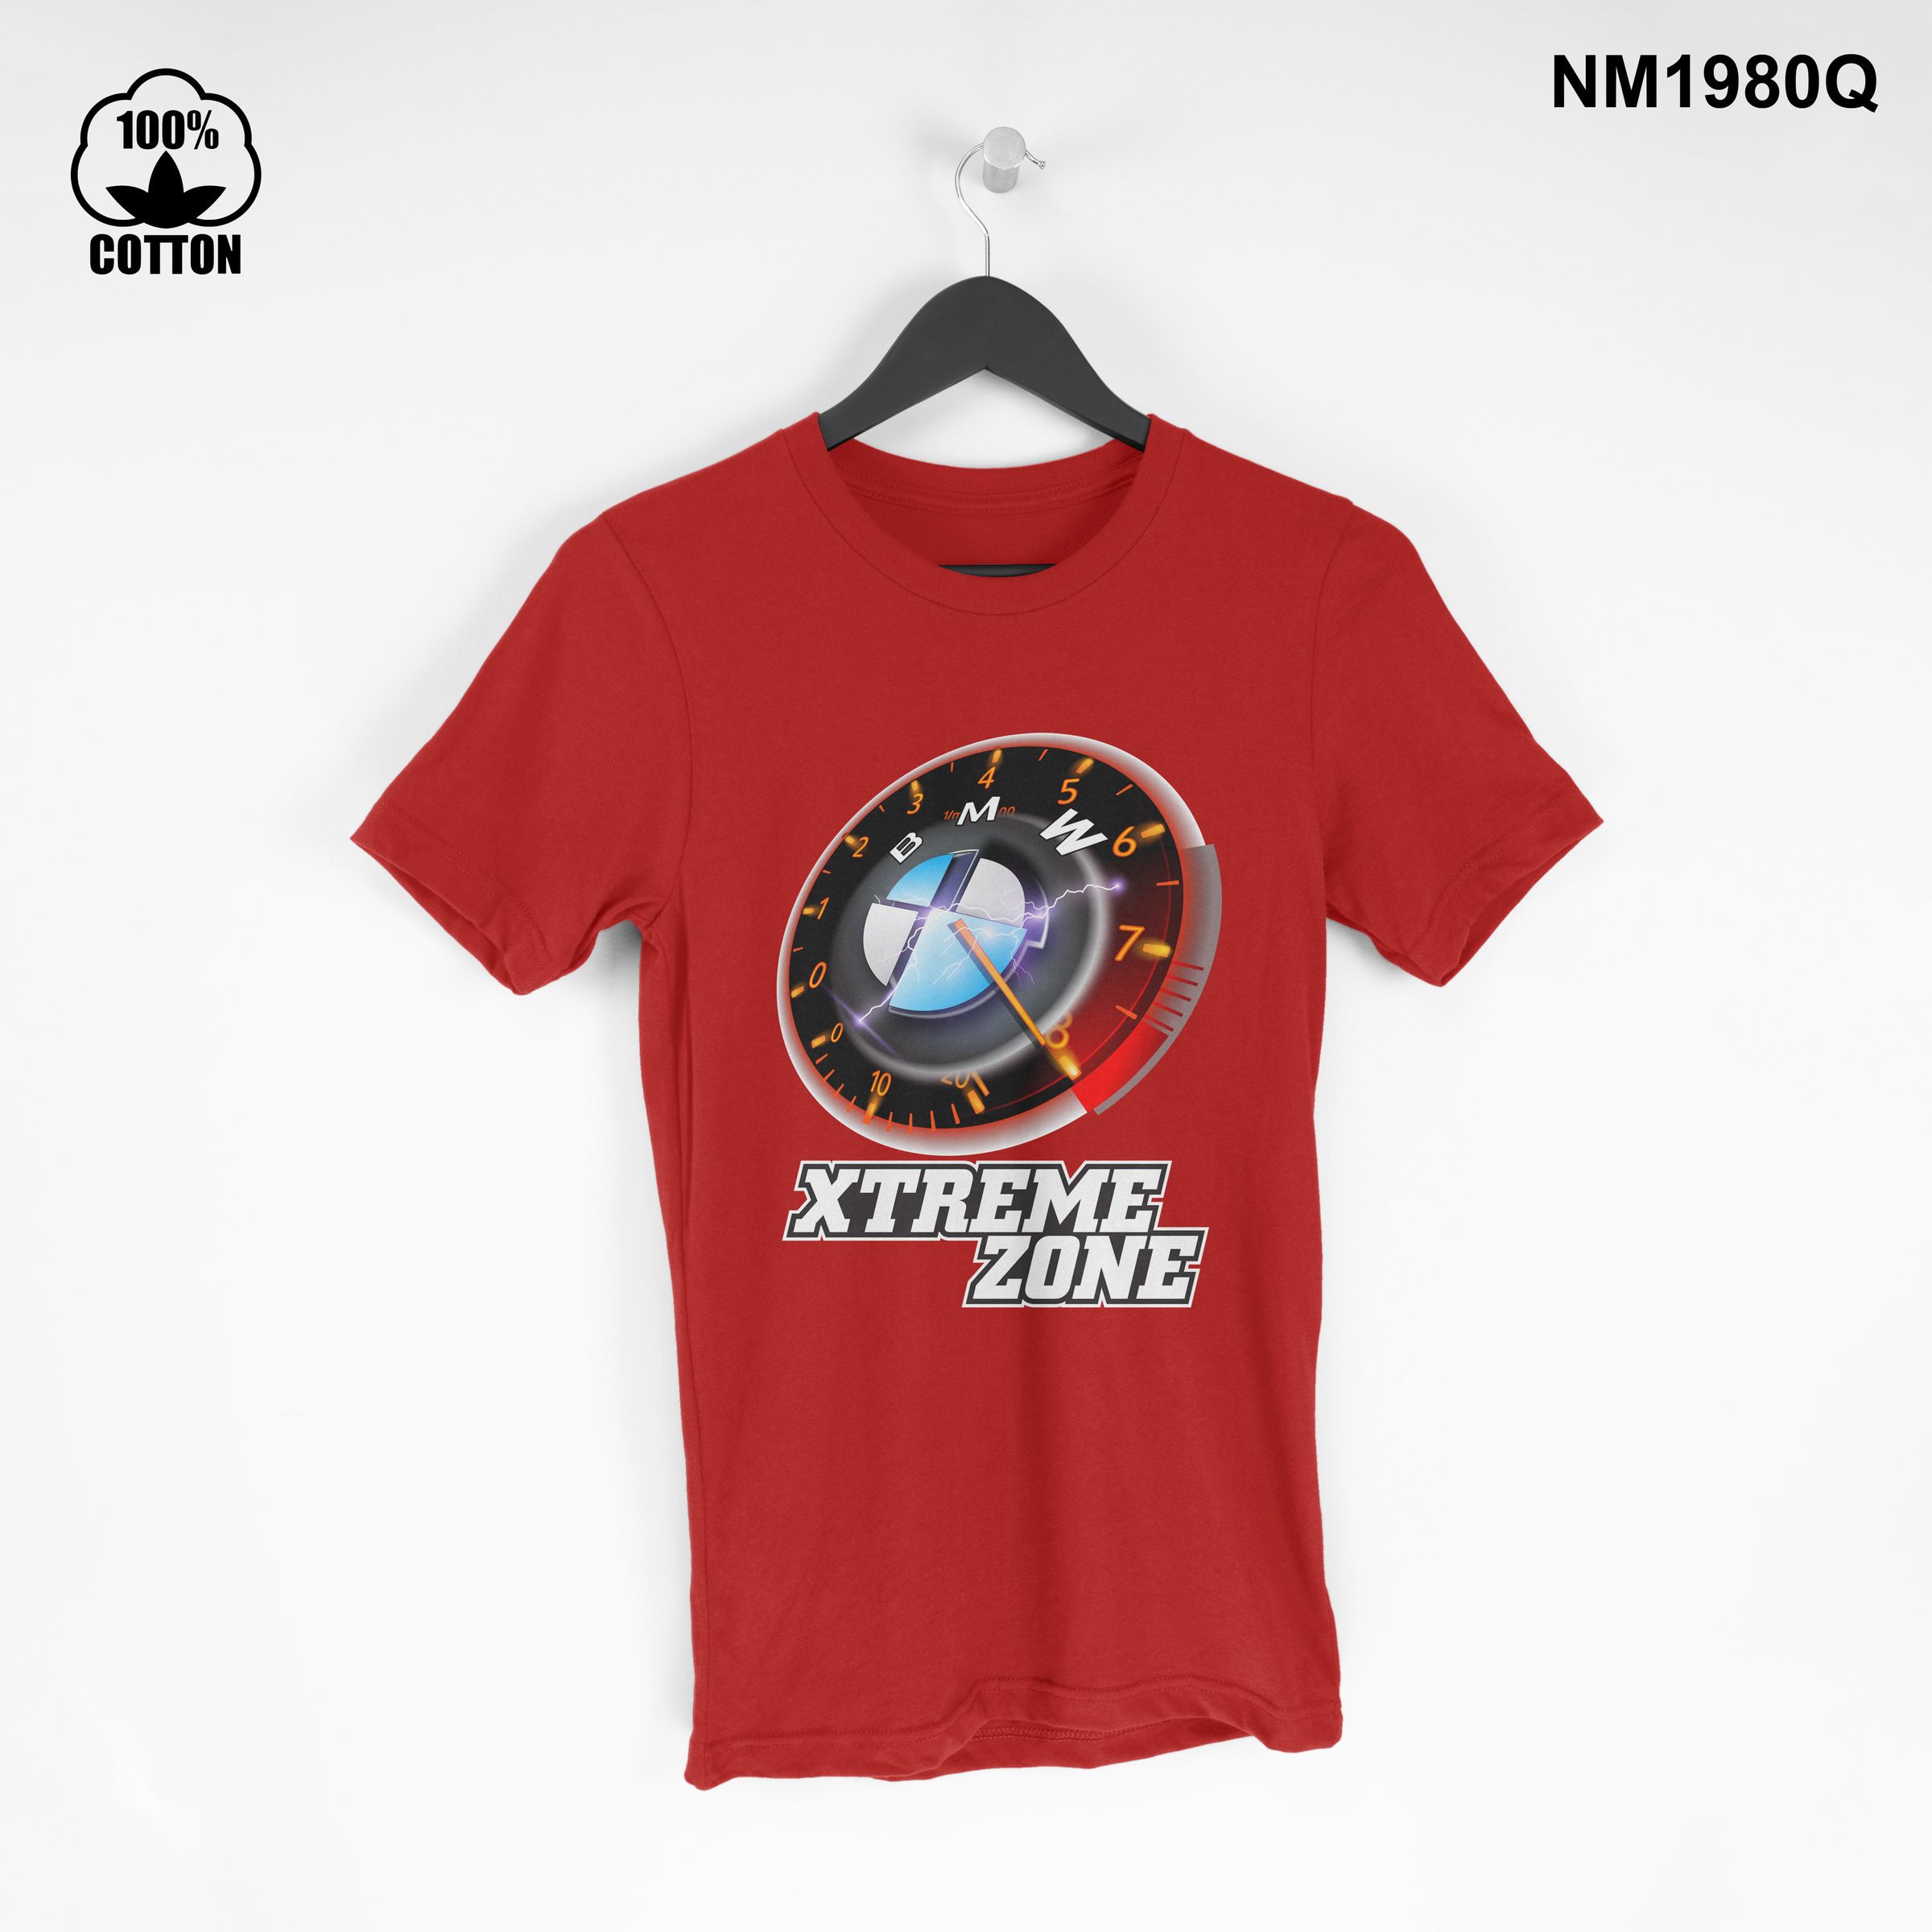 1.34 New Design BMW-MAX-Speed XTREME ZONE Short Sleeve Mens Clothing T Shirt Tee red.jpg